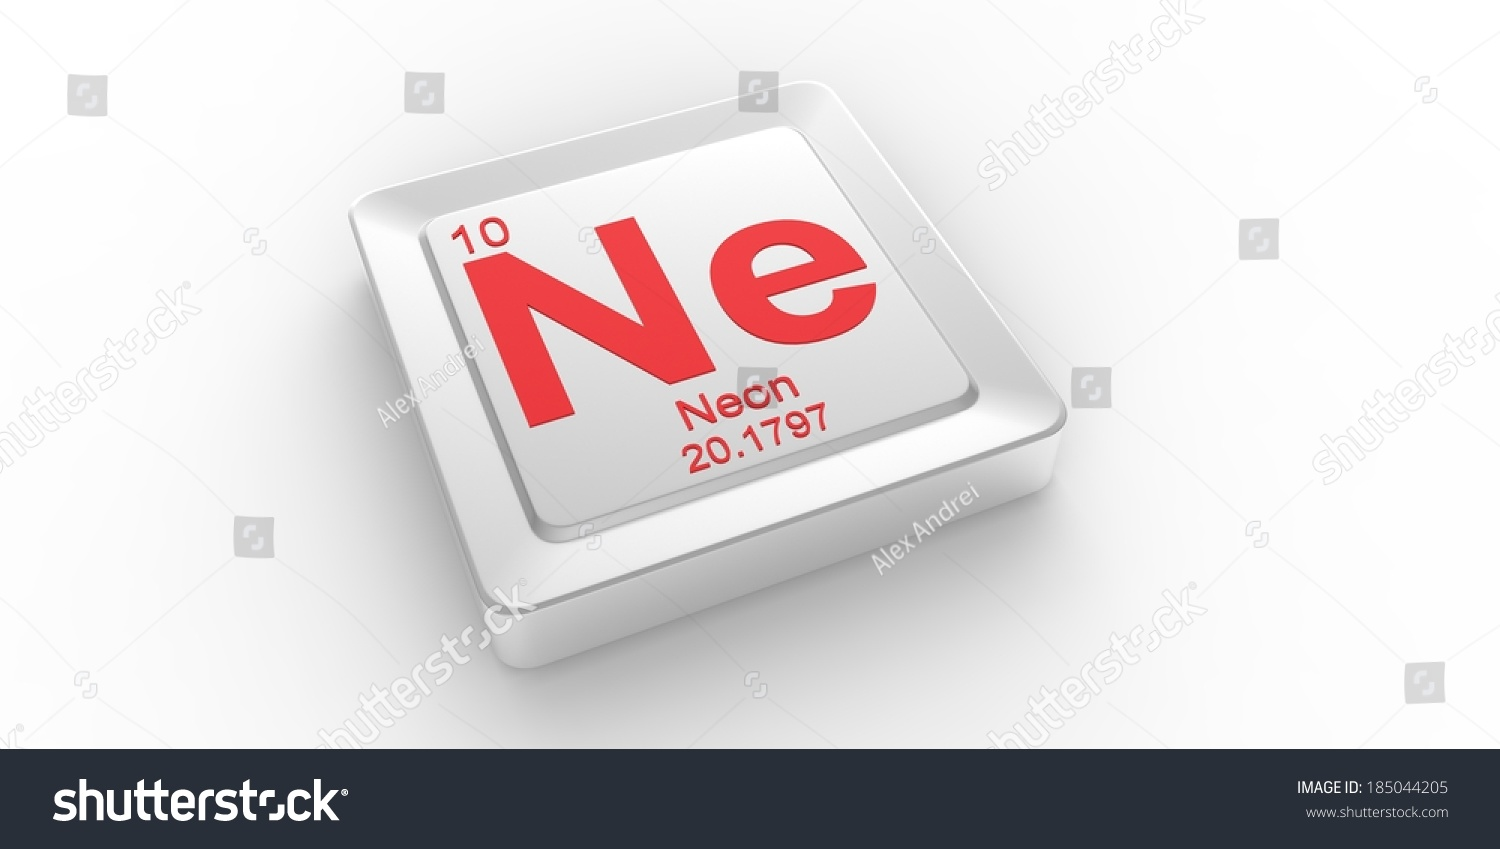 Ne symbol 10 material neon chemical stock illustration 185044205 ne symbol 10 material for neon chemical element of the periodic table buycottarizona Images